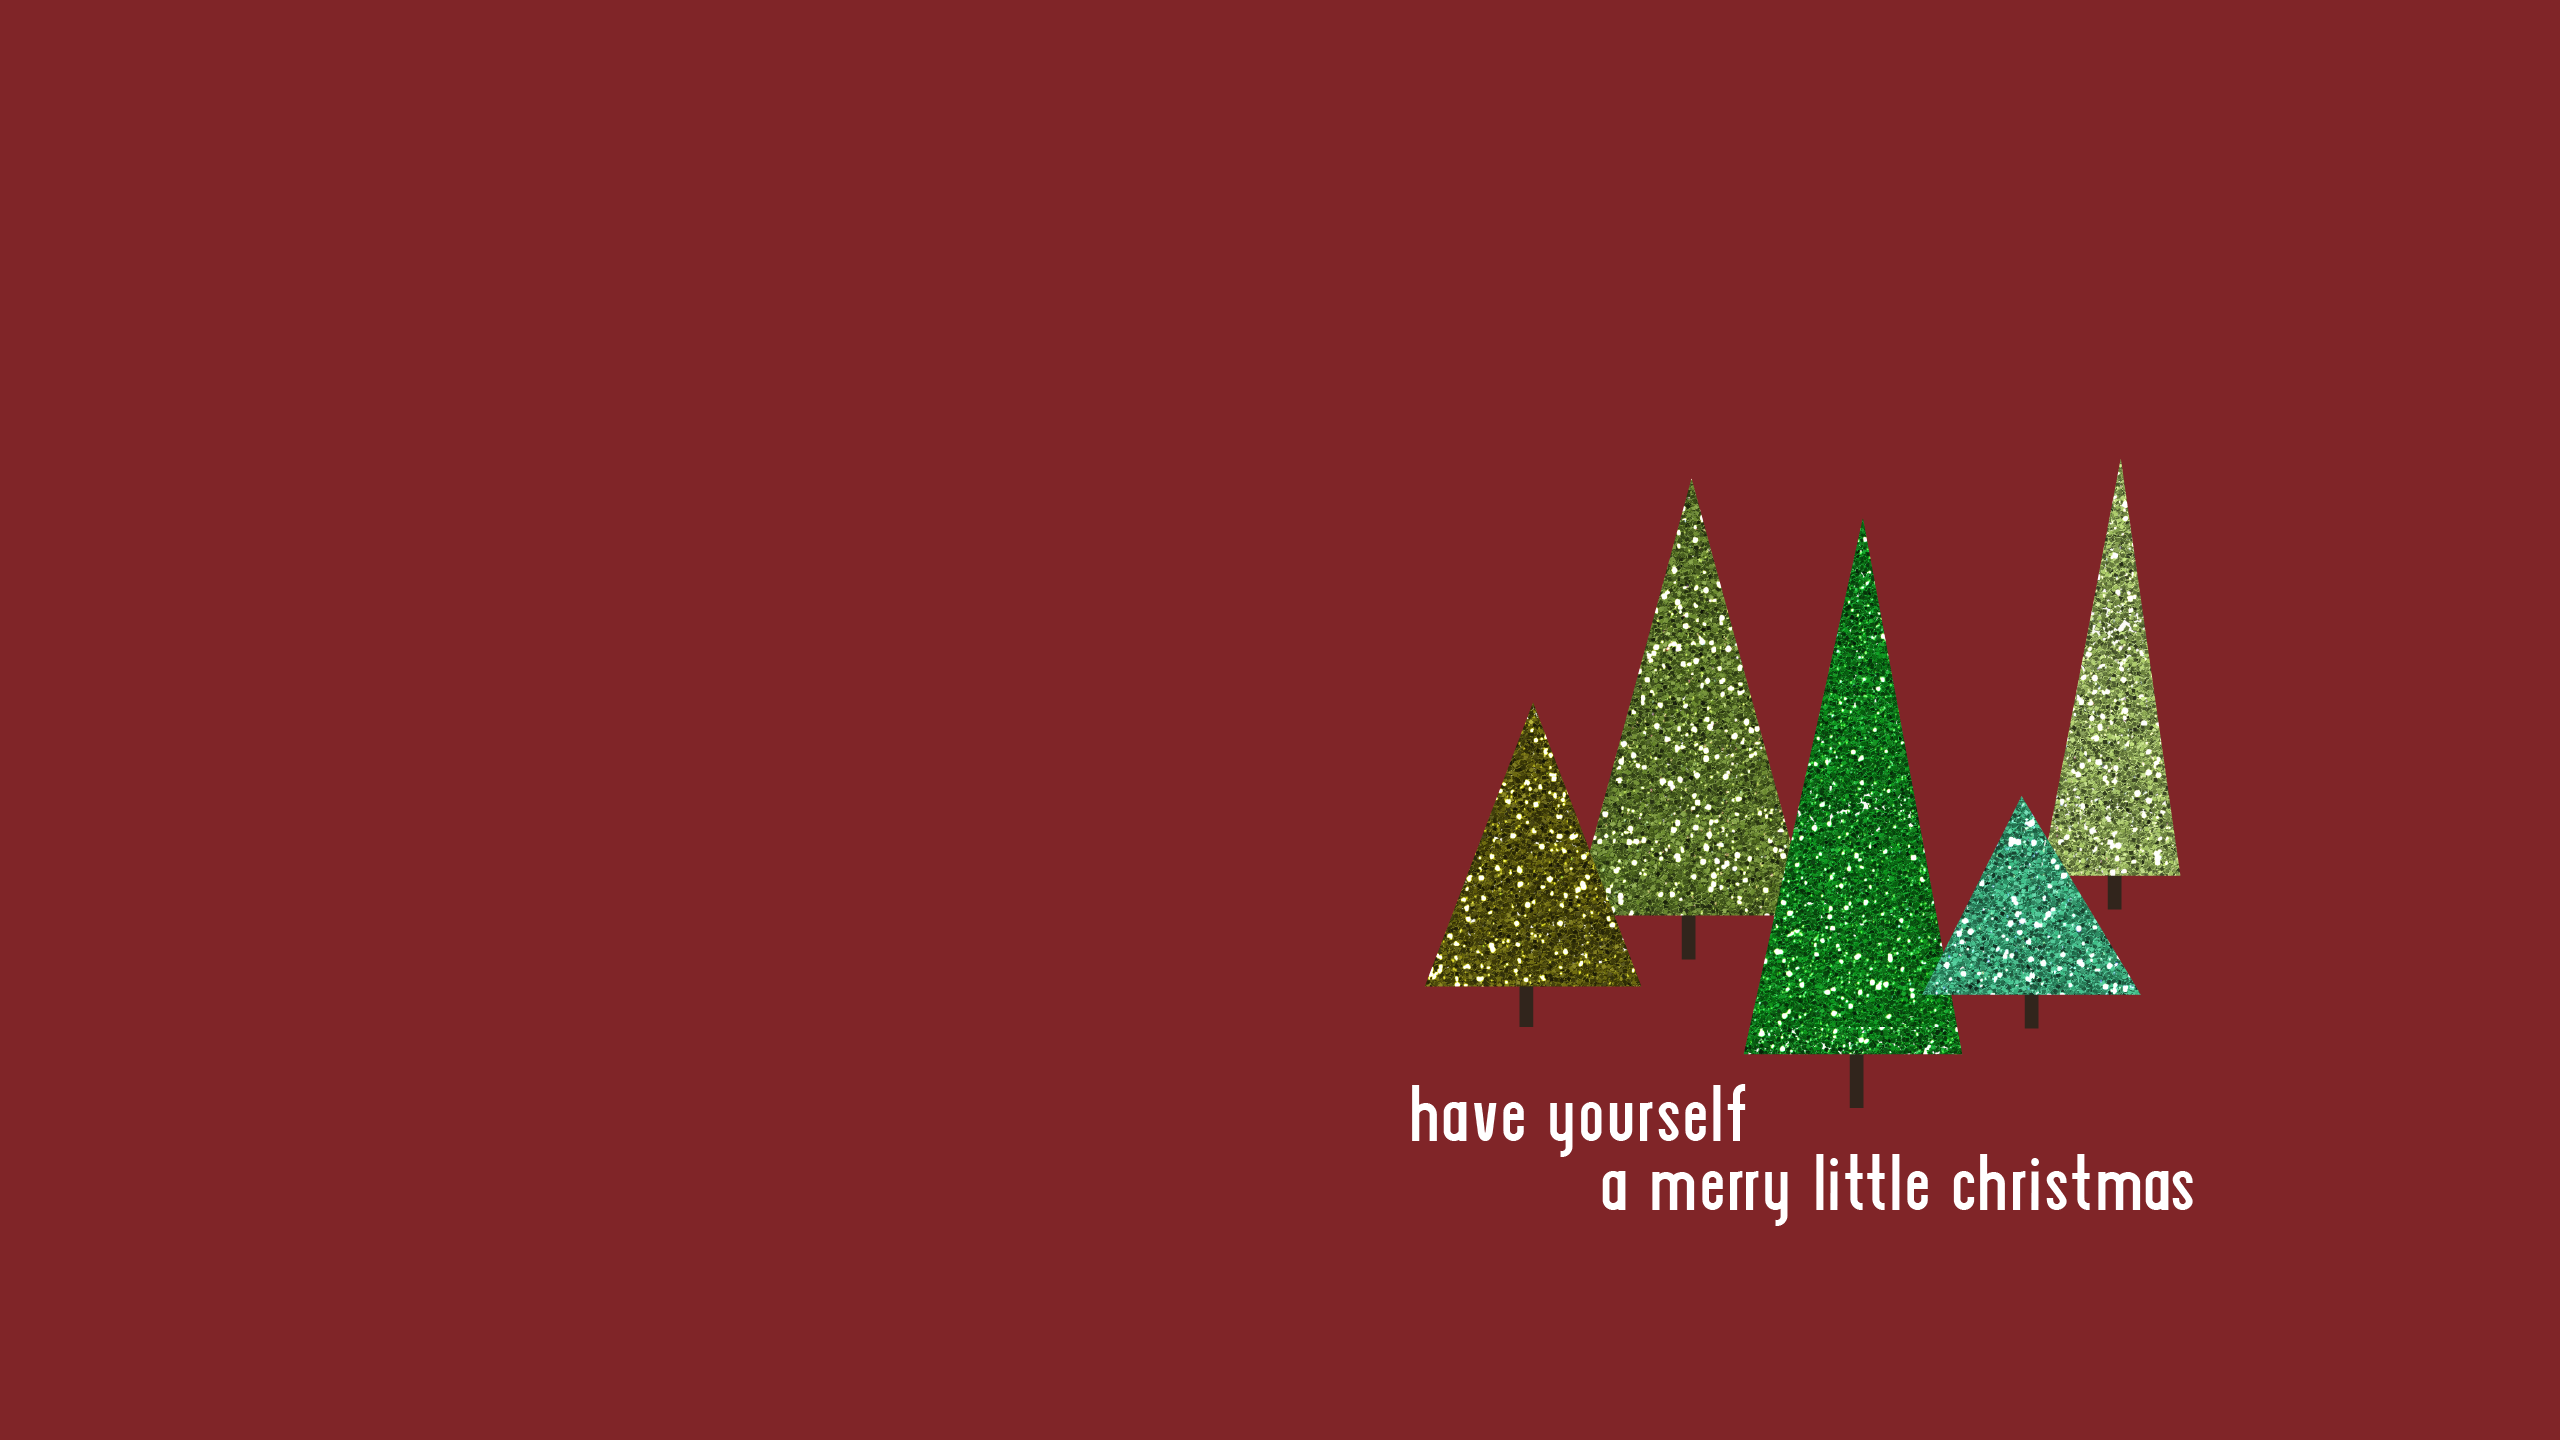 Christmas Computer Backgrounds.Free Download Christmas Computer Desktop Iphone